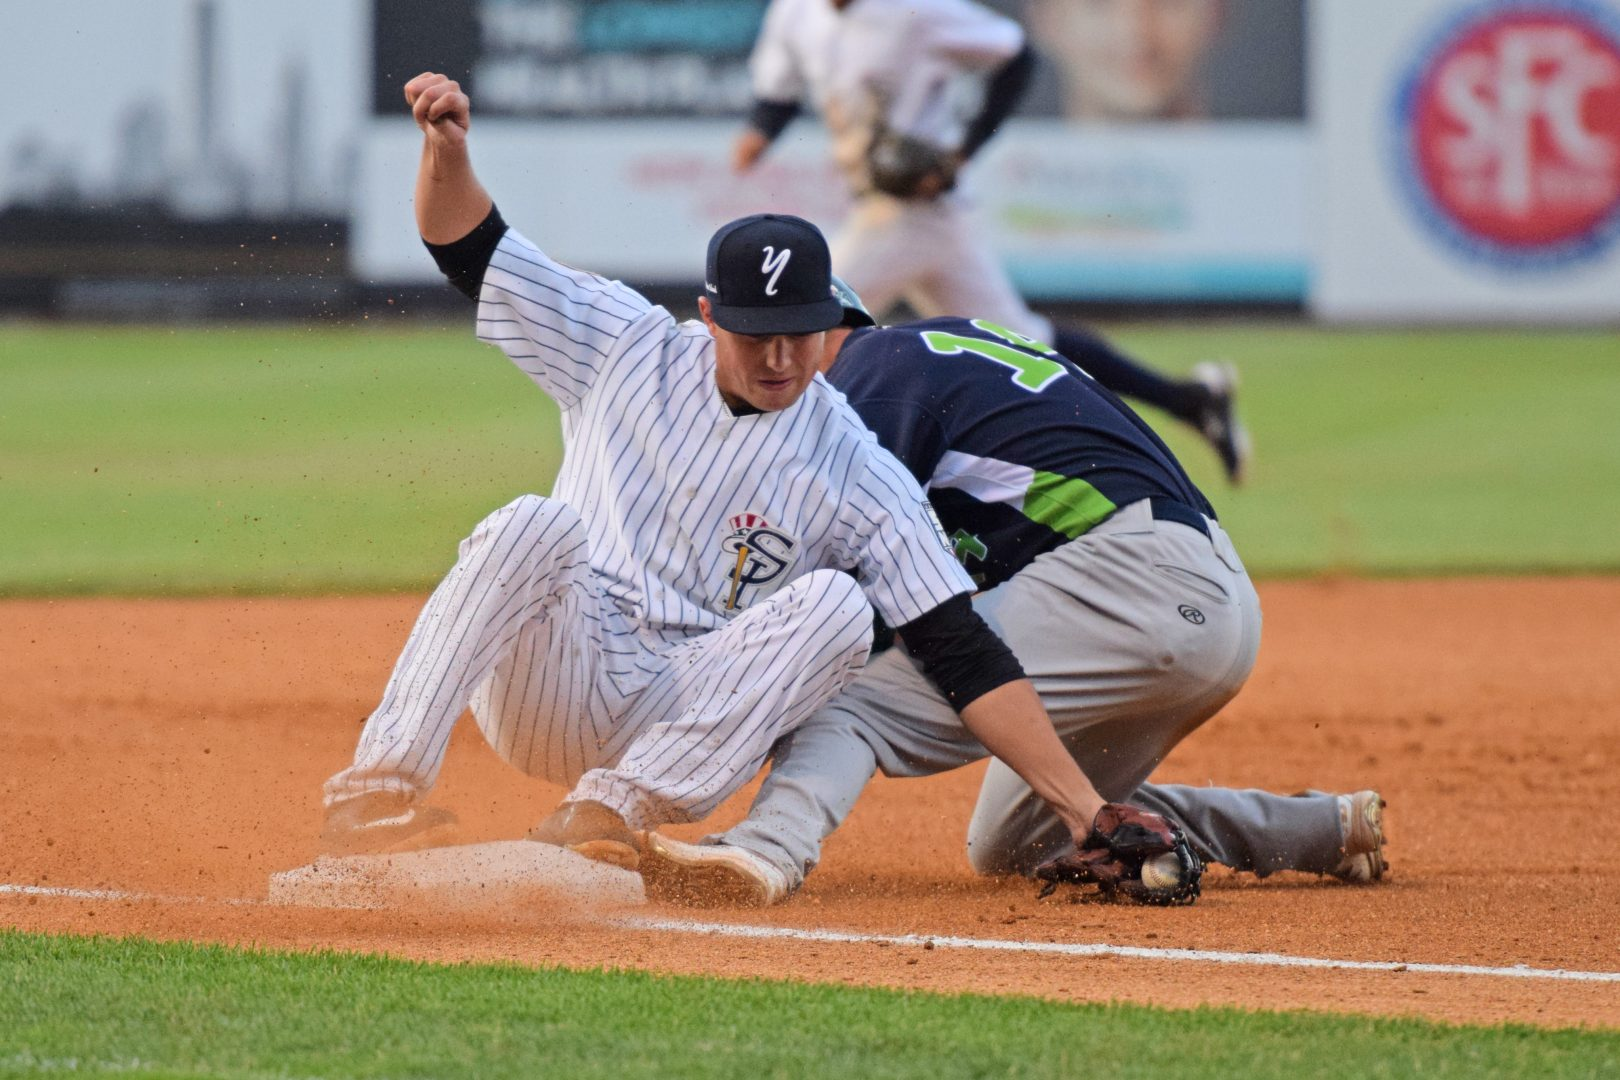 Steven Pallares steals third base on a close play, colliding with Mandy Alvarez. (Robert M. Pimpsner)